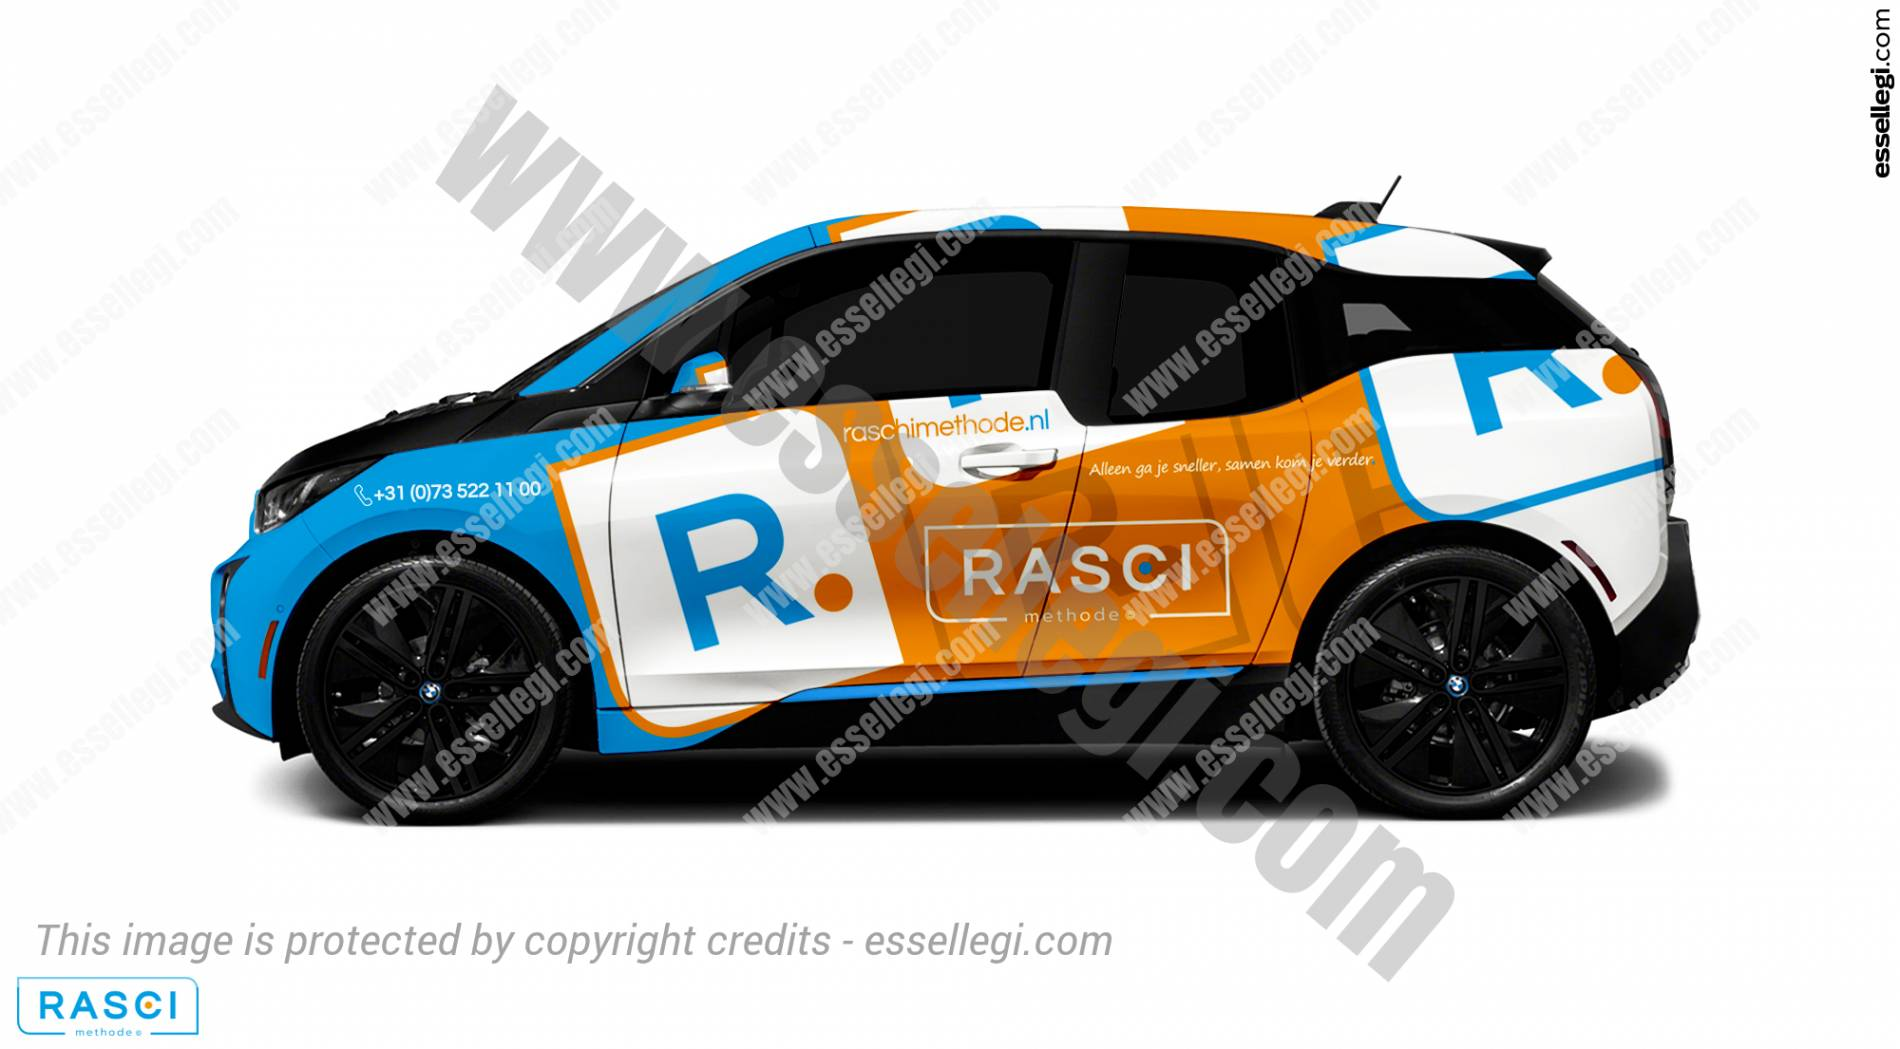 BMW i3 | Car Wrap Design by Essellegi. Car Signs, Car Signage, Car Signwriting, Car Wrap Designer, Car Graphic, Custom Vehicle Signage, Car Wrap Design by Essellegi.